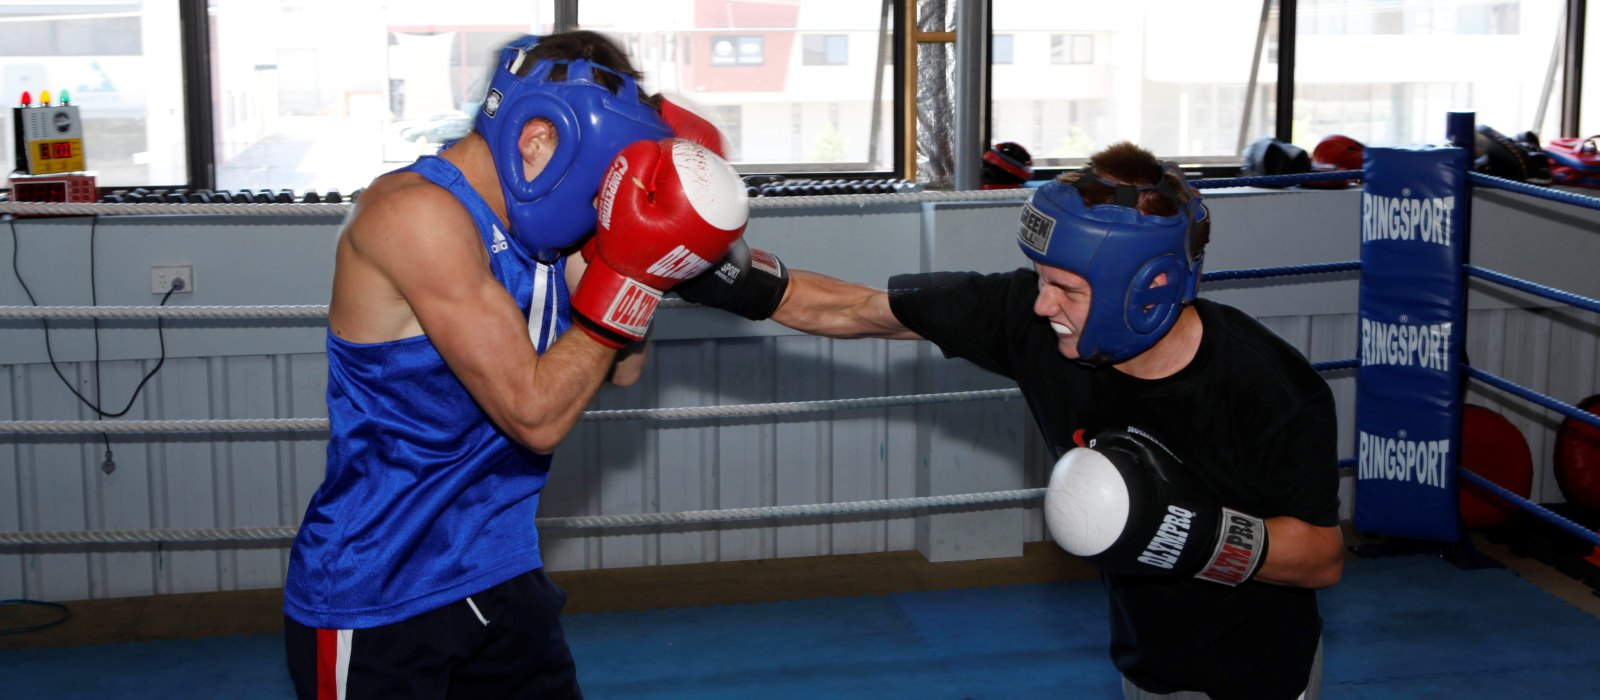 Two Australian champions boxing sparring